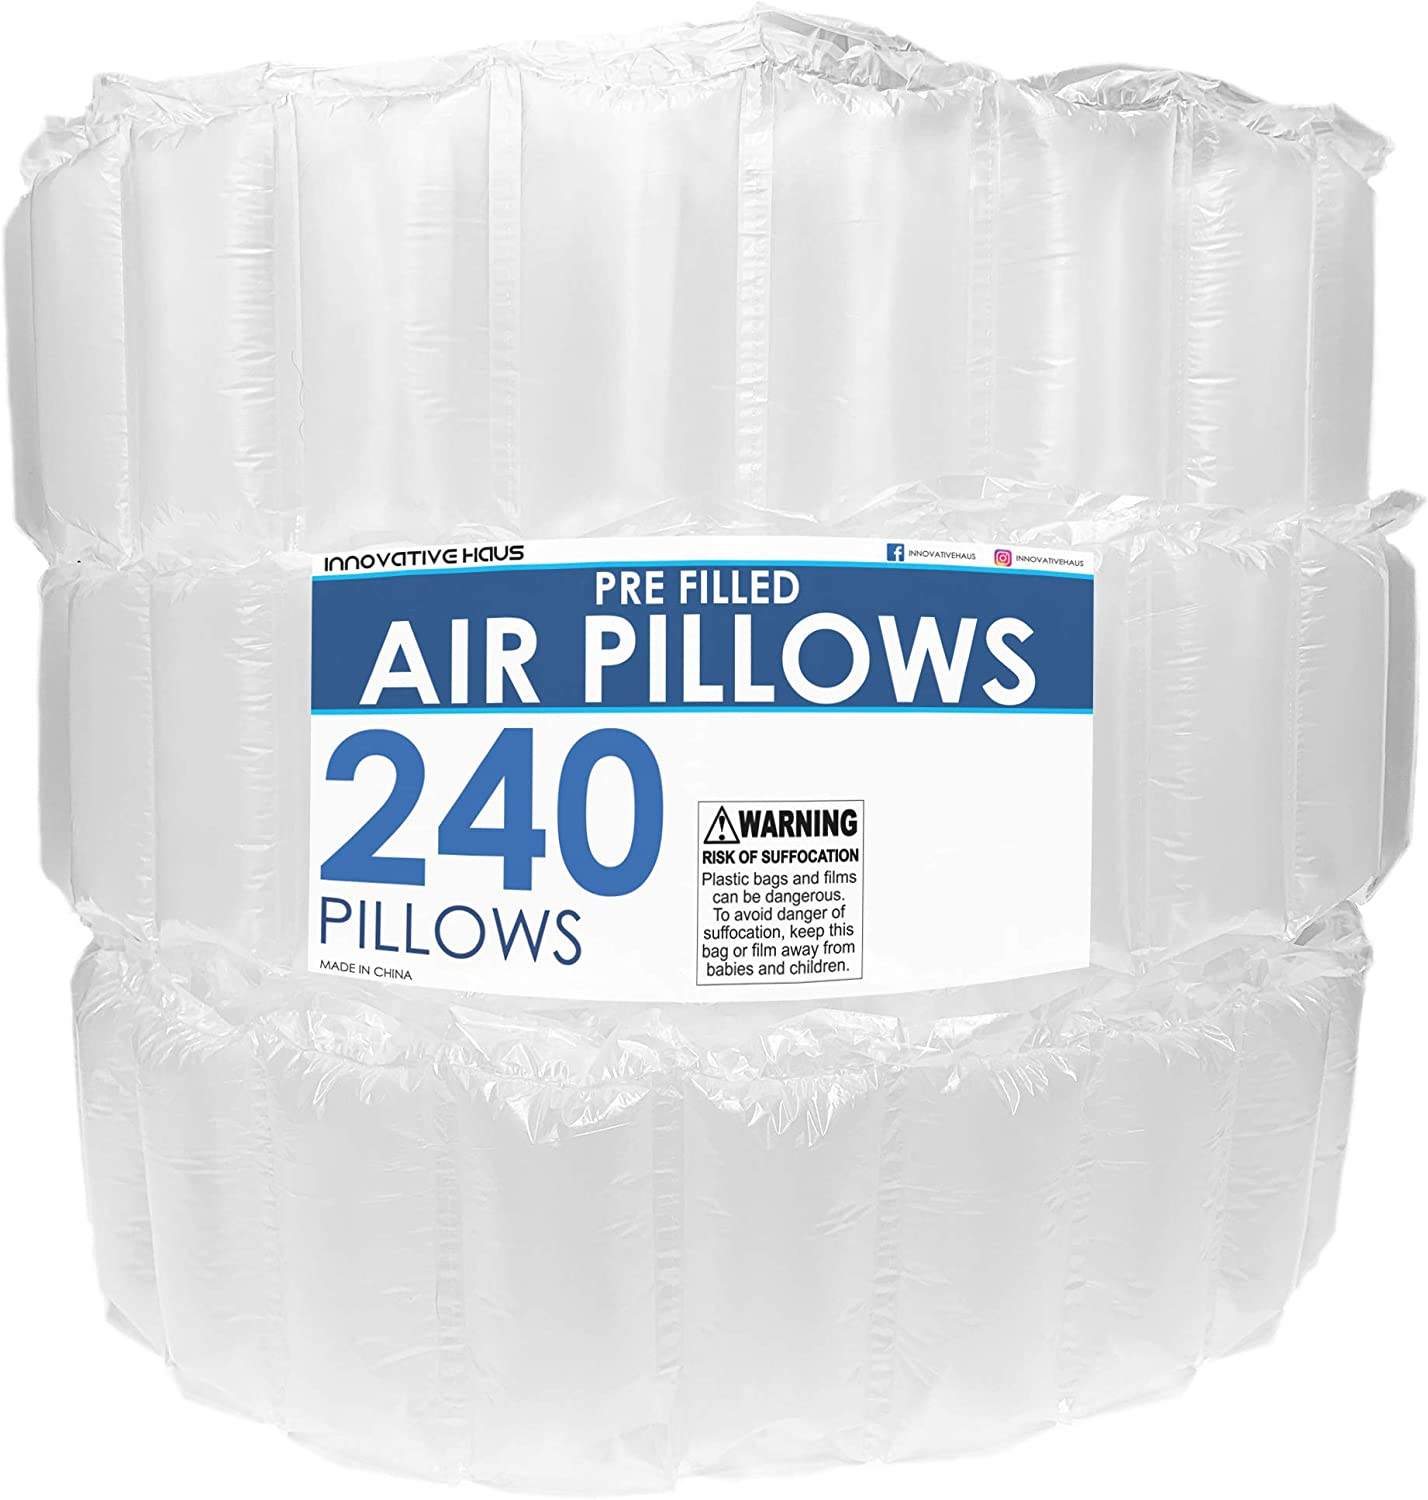 Innovative Haus 240 Count 4x8 Air Pillows for Filling Void in Package and Paper. Eco Friendly Cushioning Stuffer for Shipping and Packaging Great Packing Supplies Alternative to Peanuts Foam